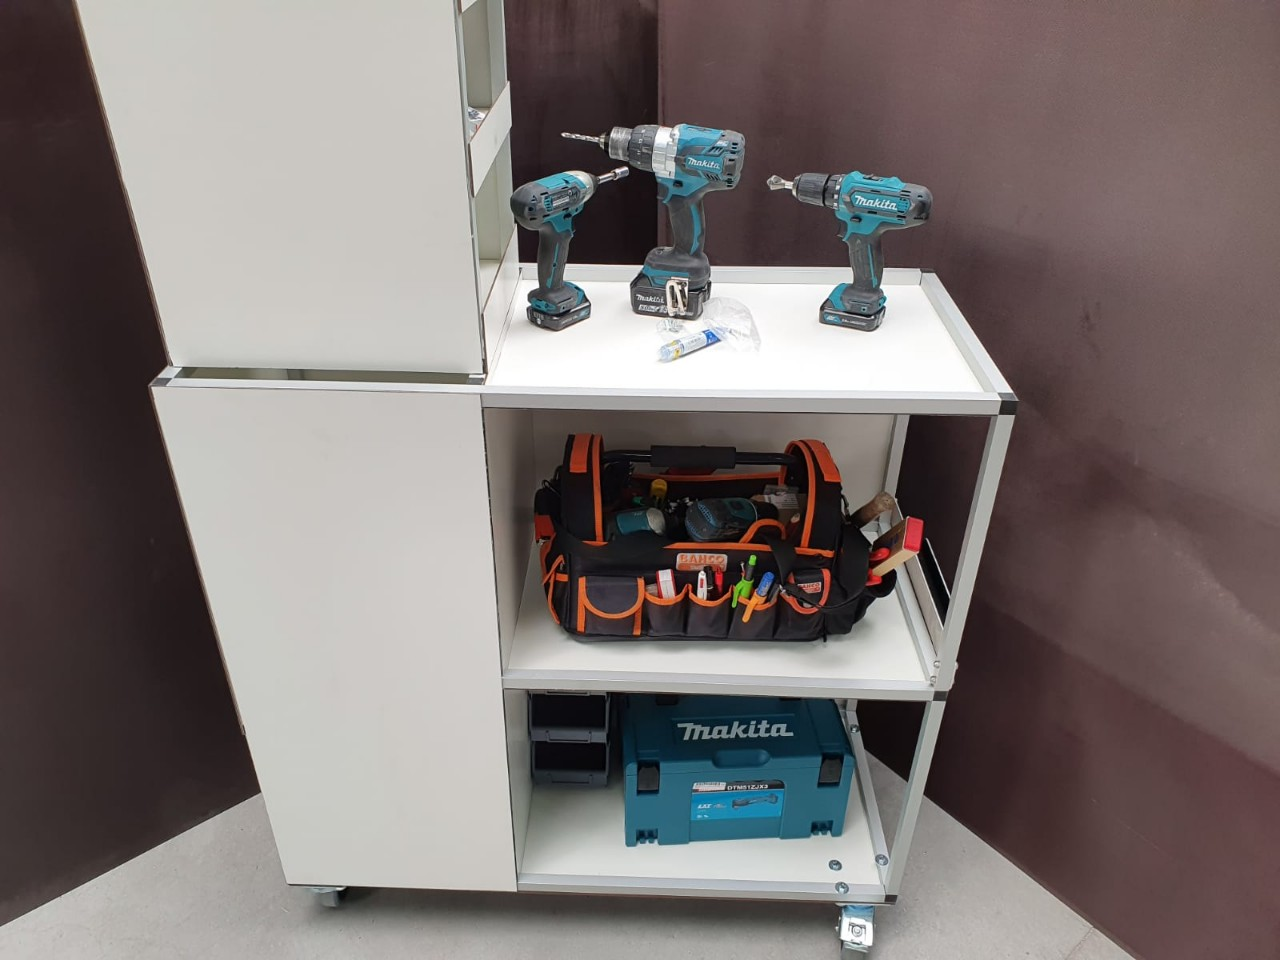 Tooltrolly # (2)